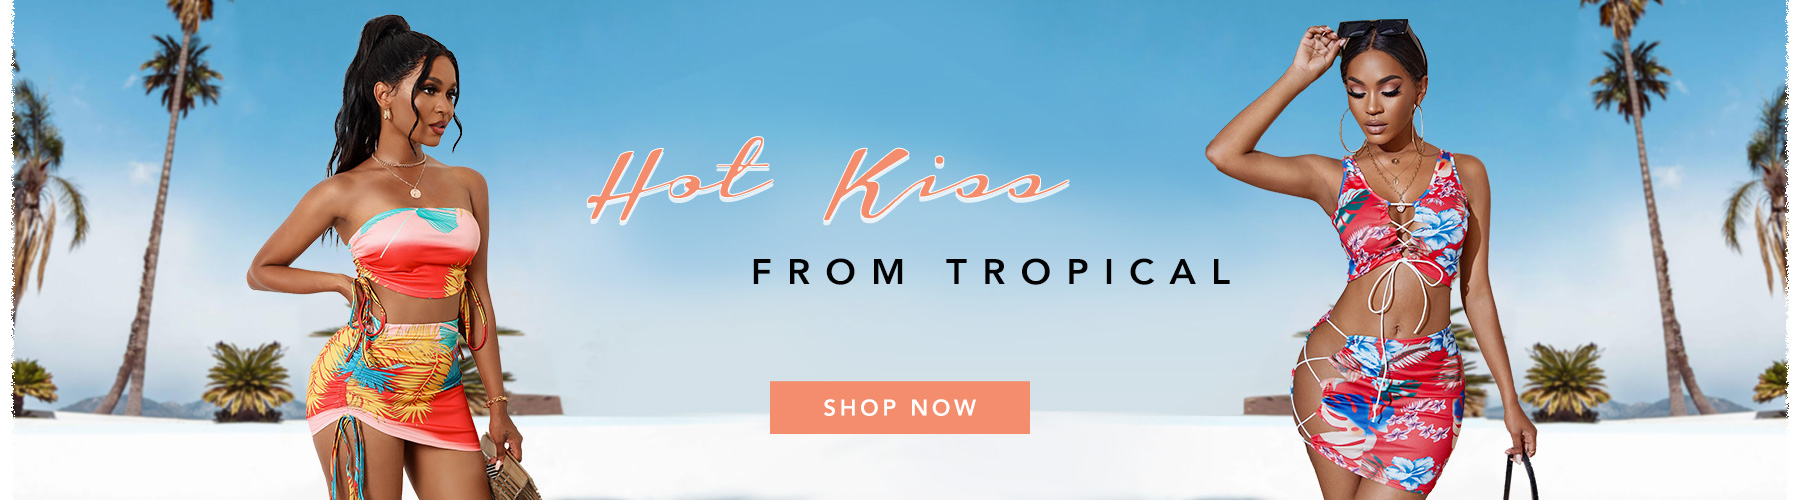 Hot Kiss From Tropical